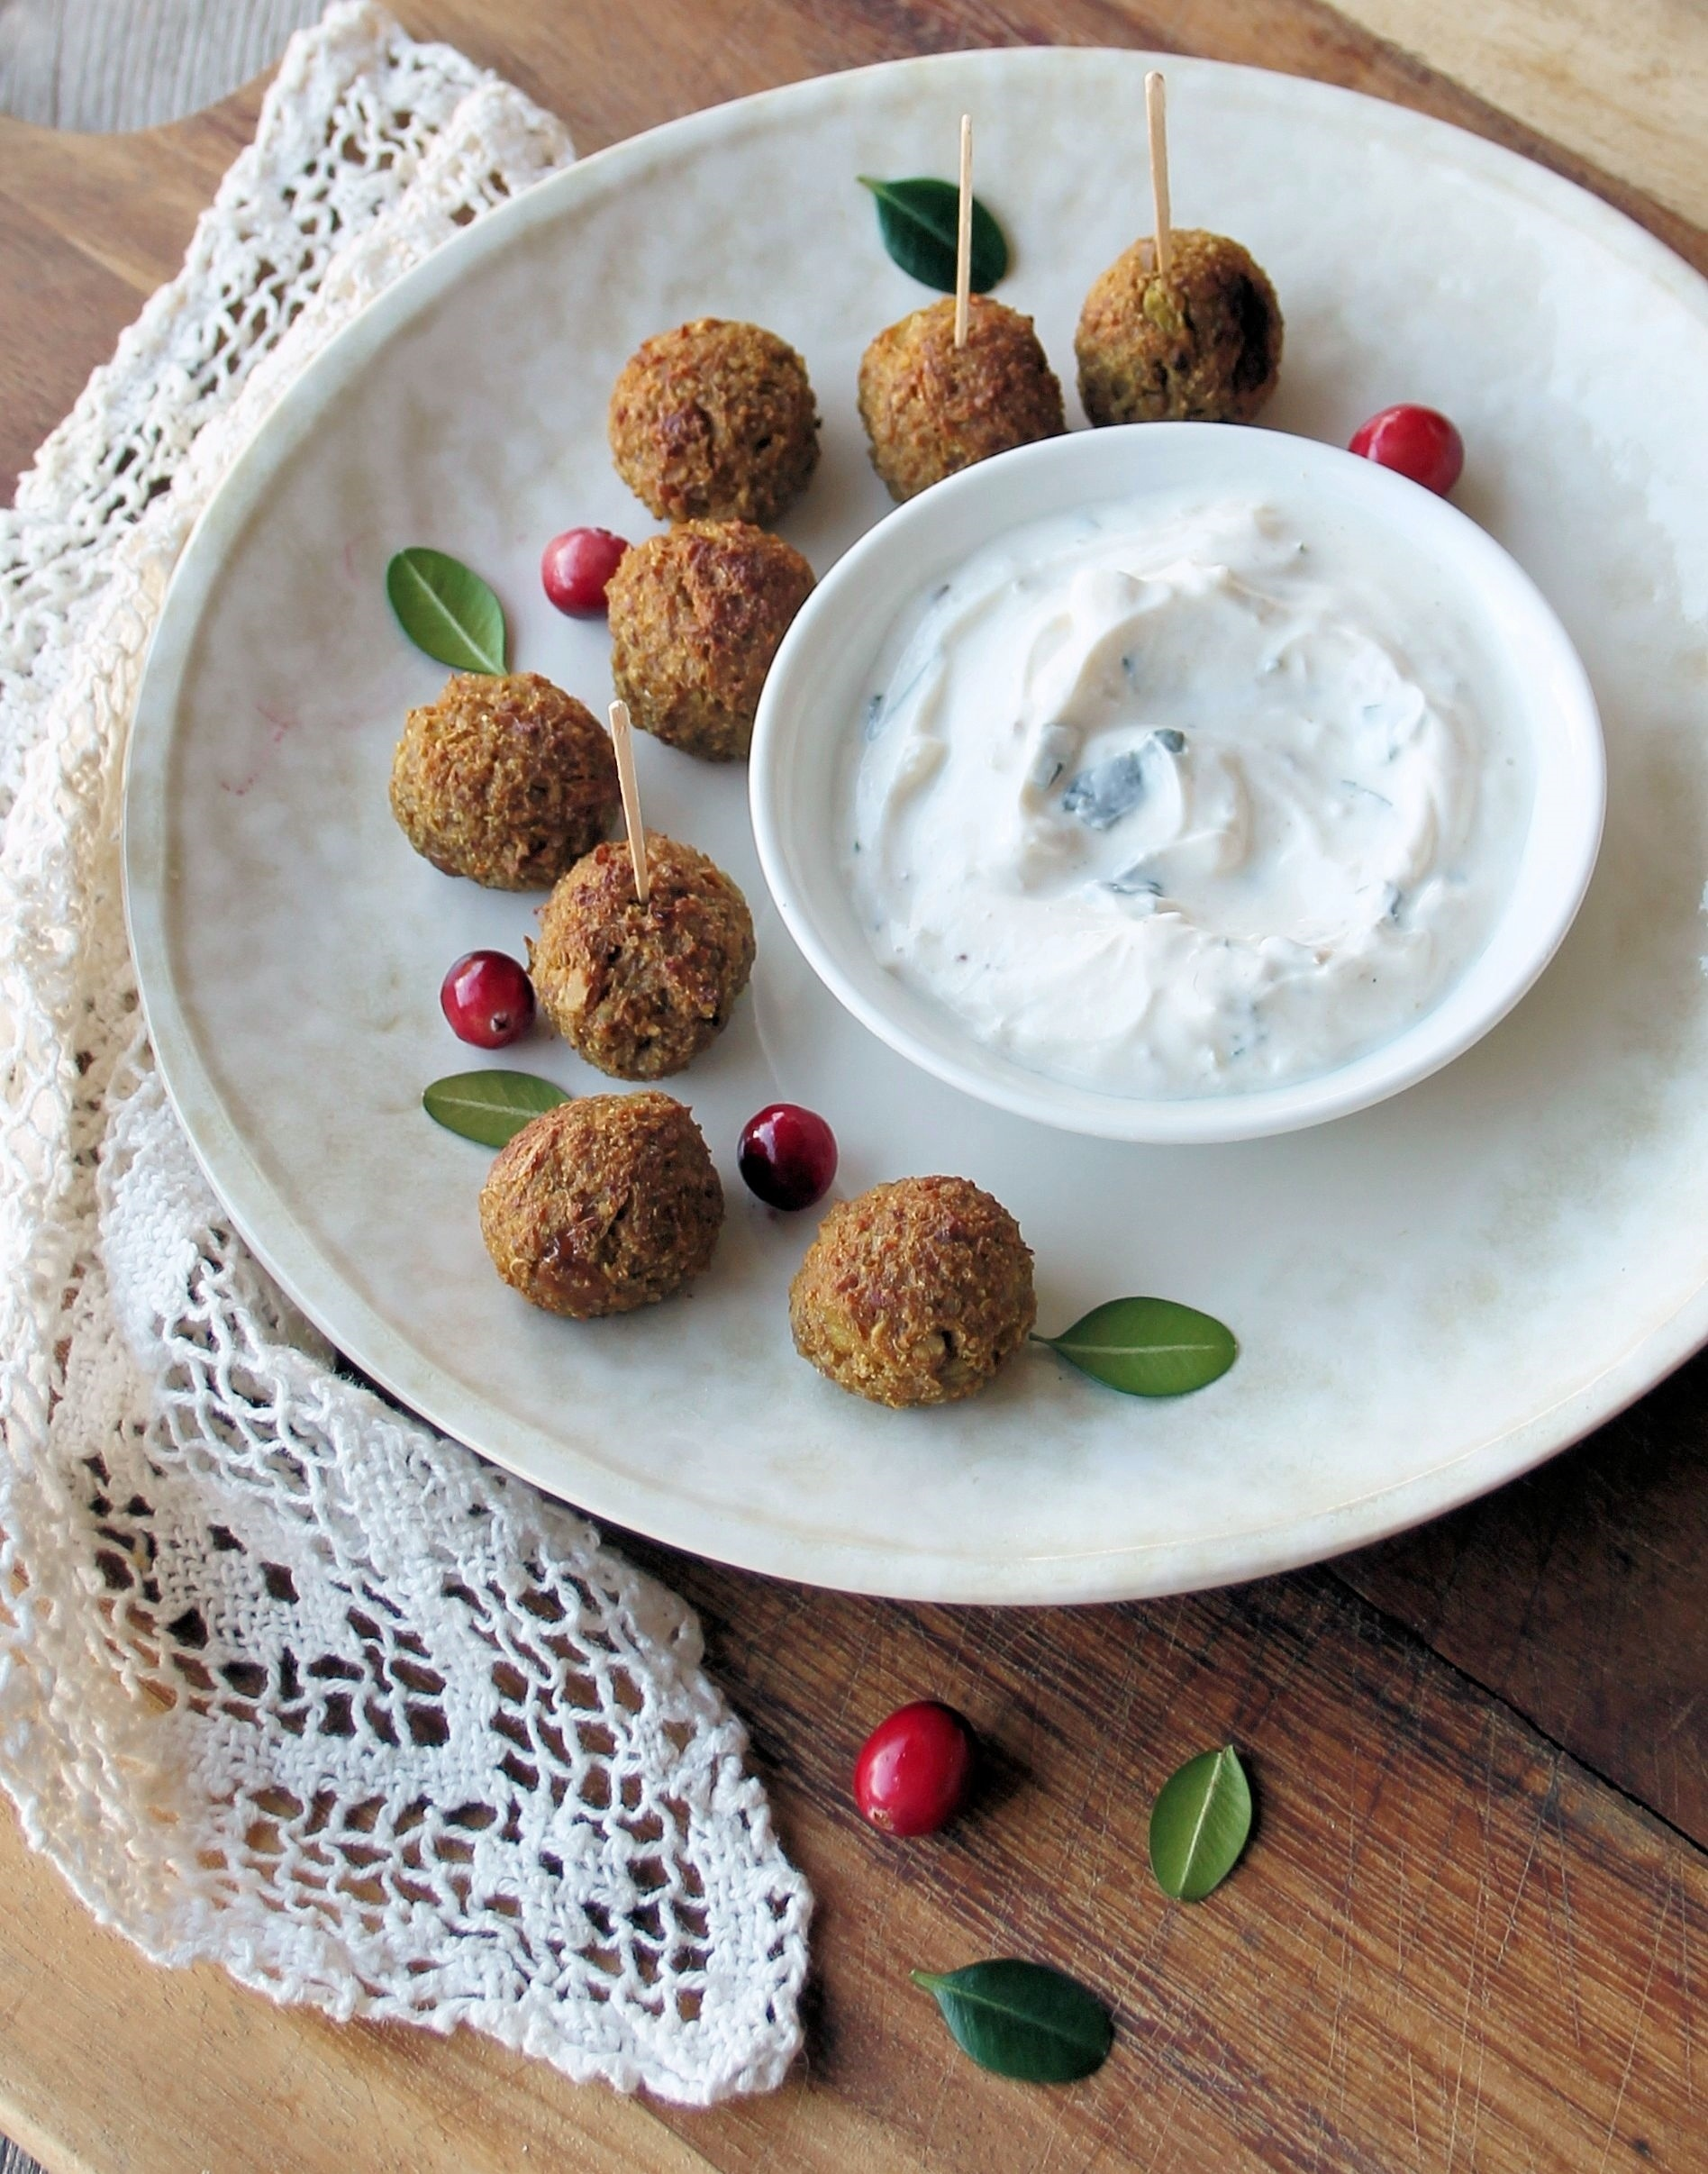 Baked Quinoa Balls with Yogurt Dip (Gluten-Free)